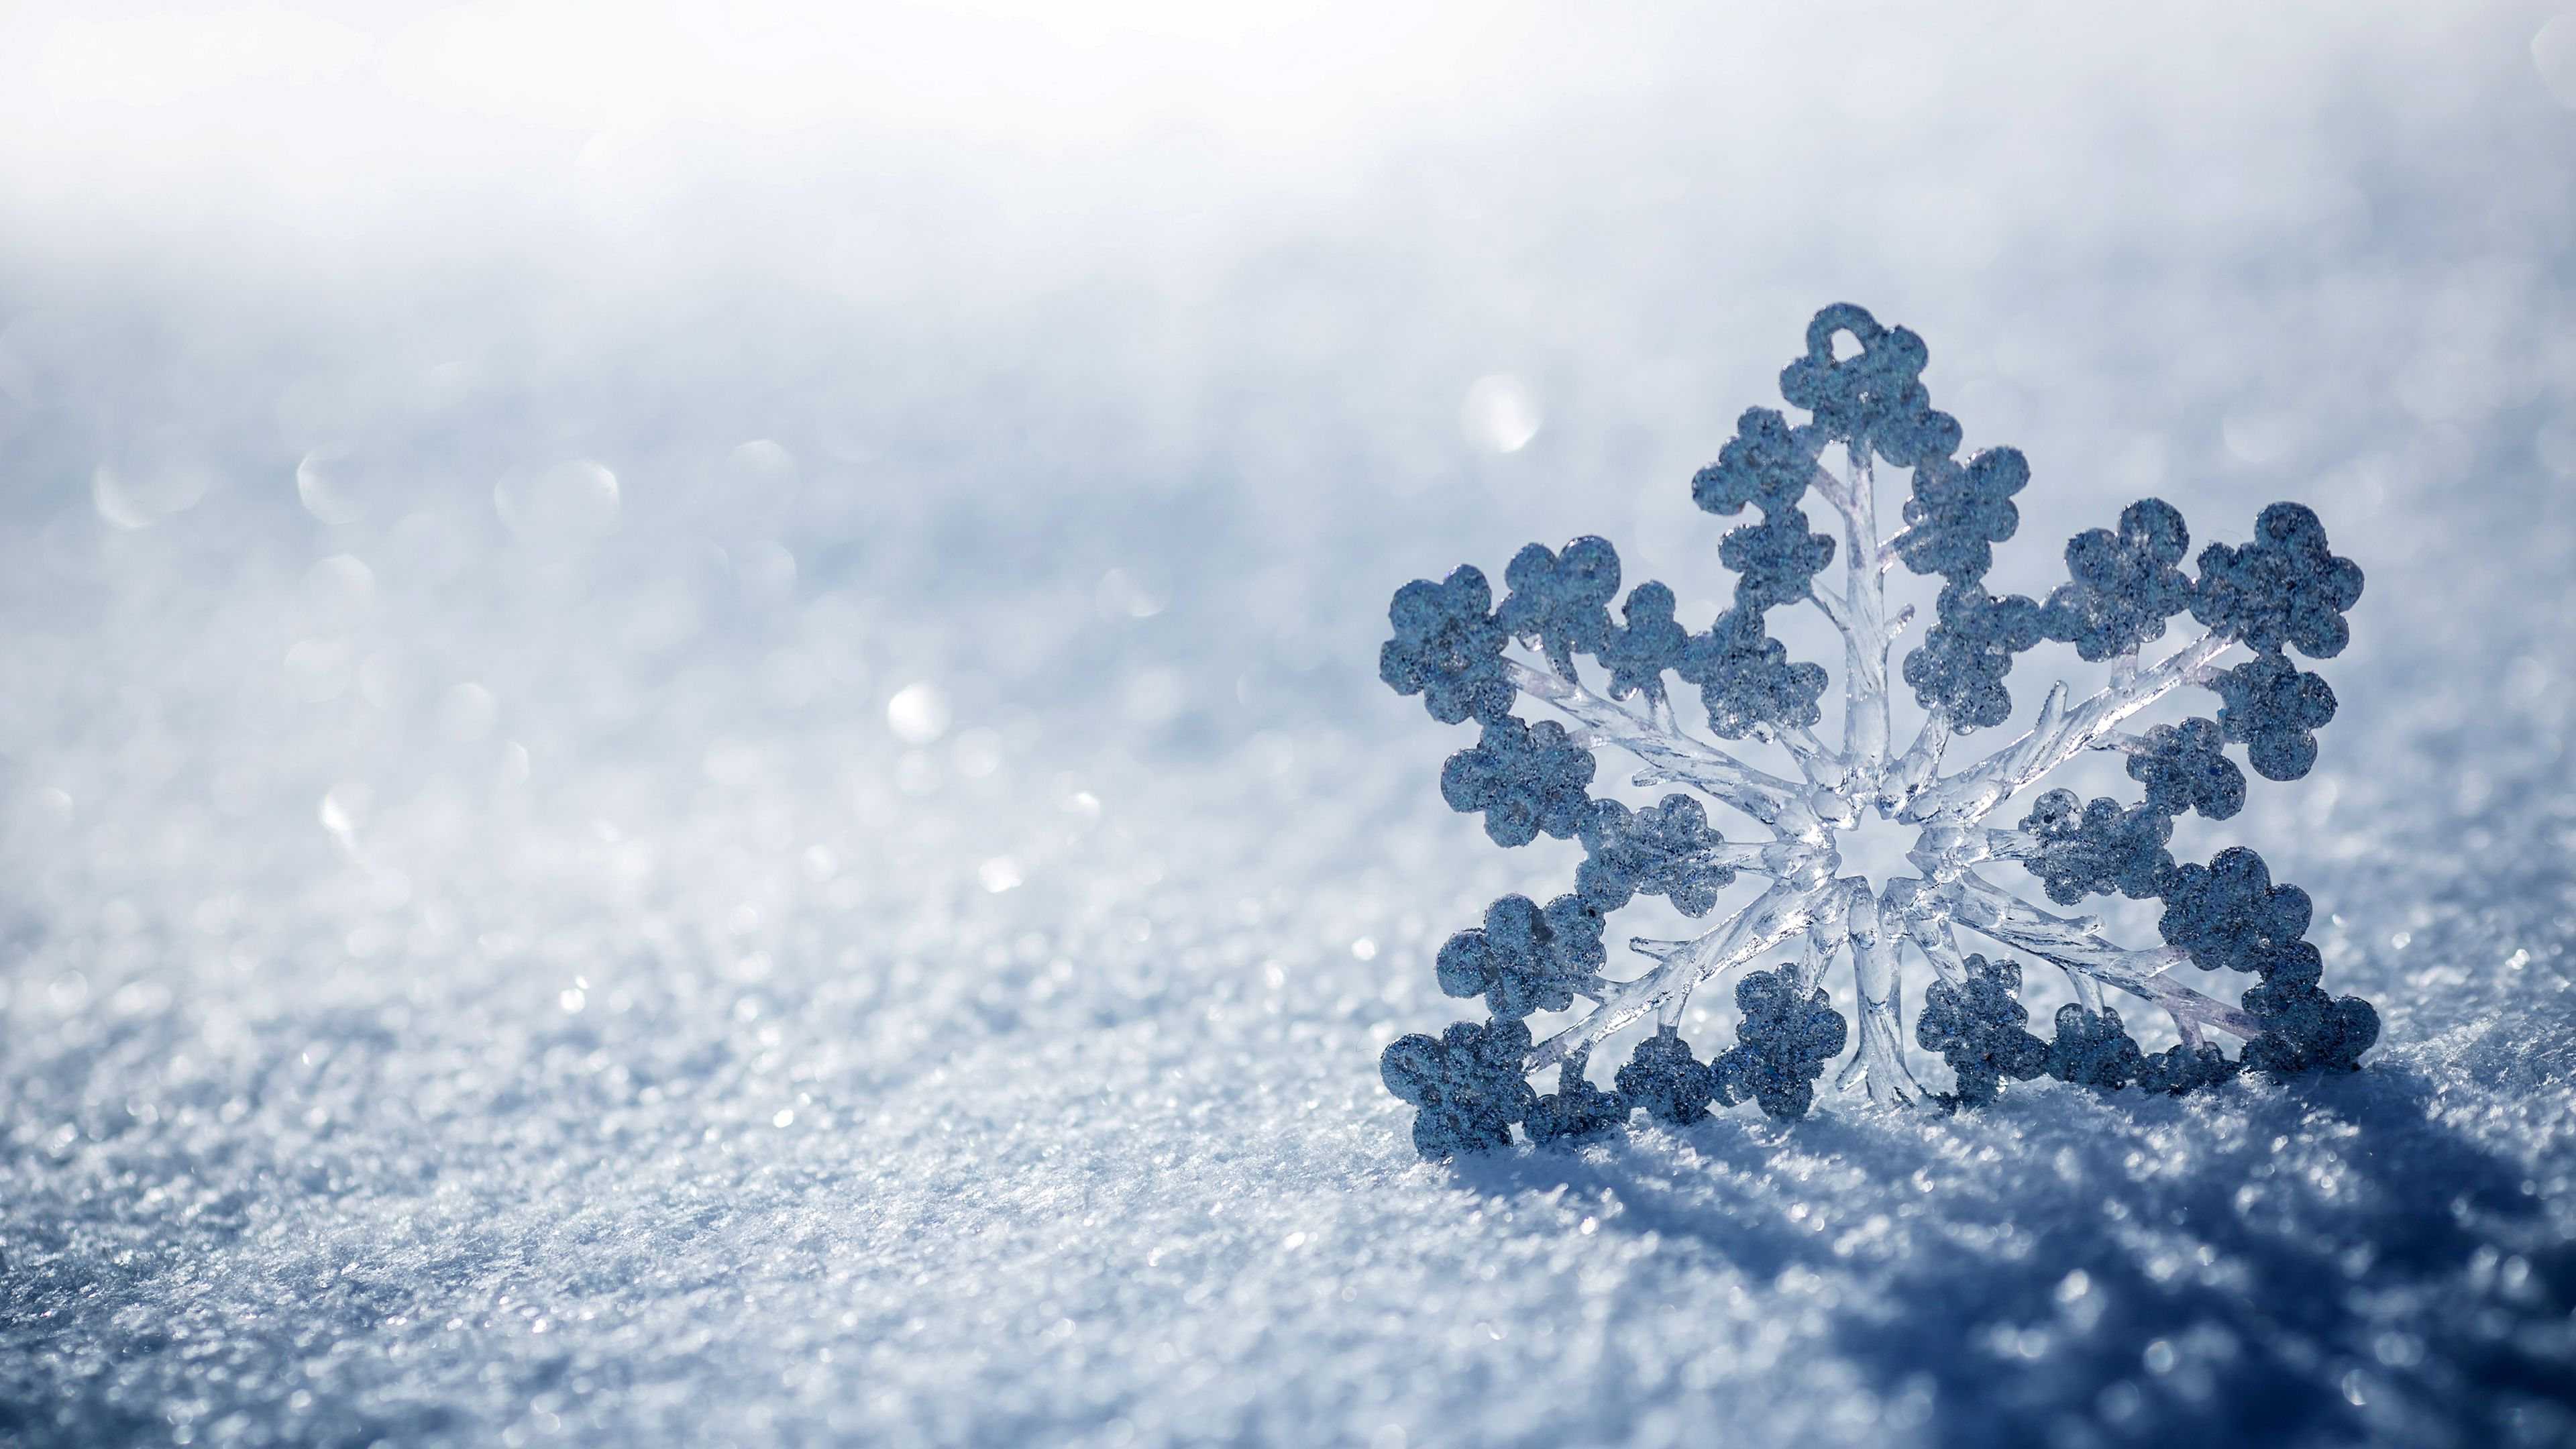 Snowflake Wallpaper Hd Android Apps On Google Play Wallpapers For